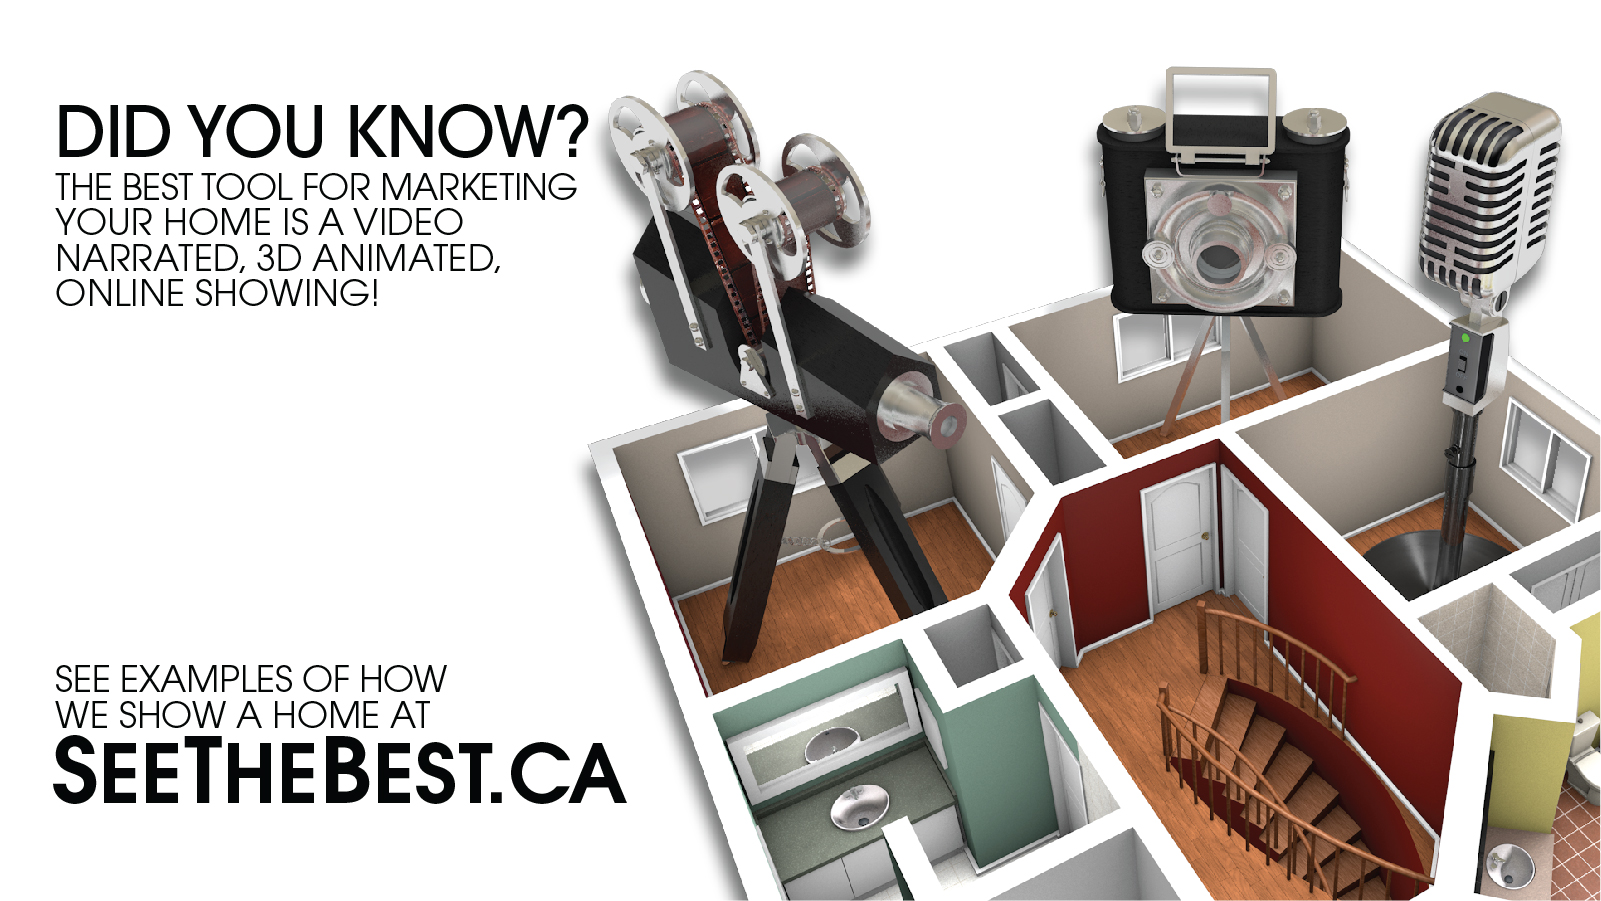 Discover what our Video Narrated, 3D Animated, Online Showing can do for your listing